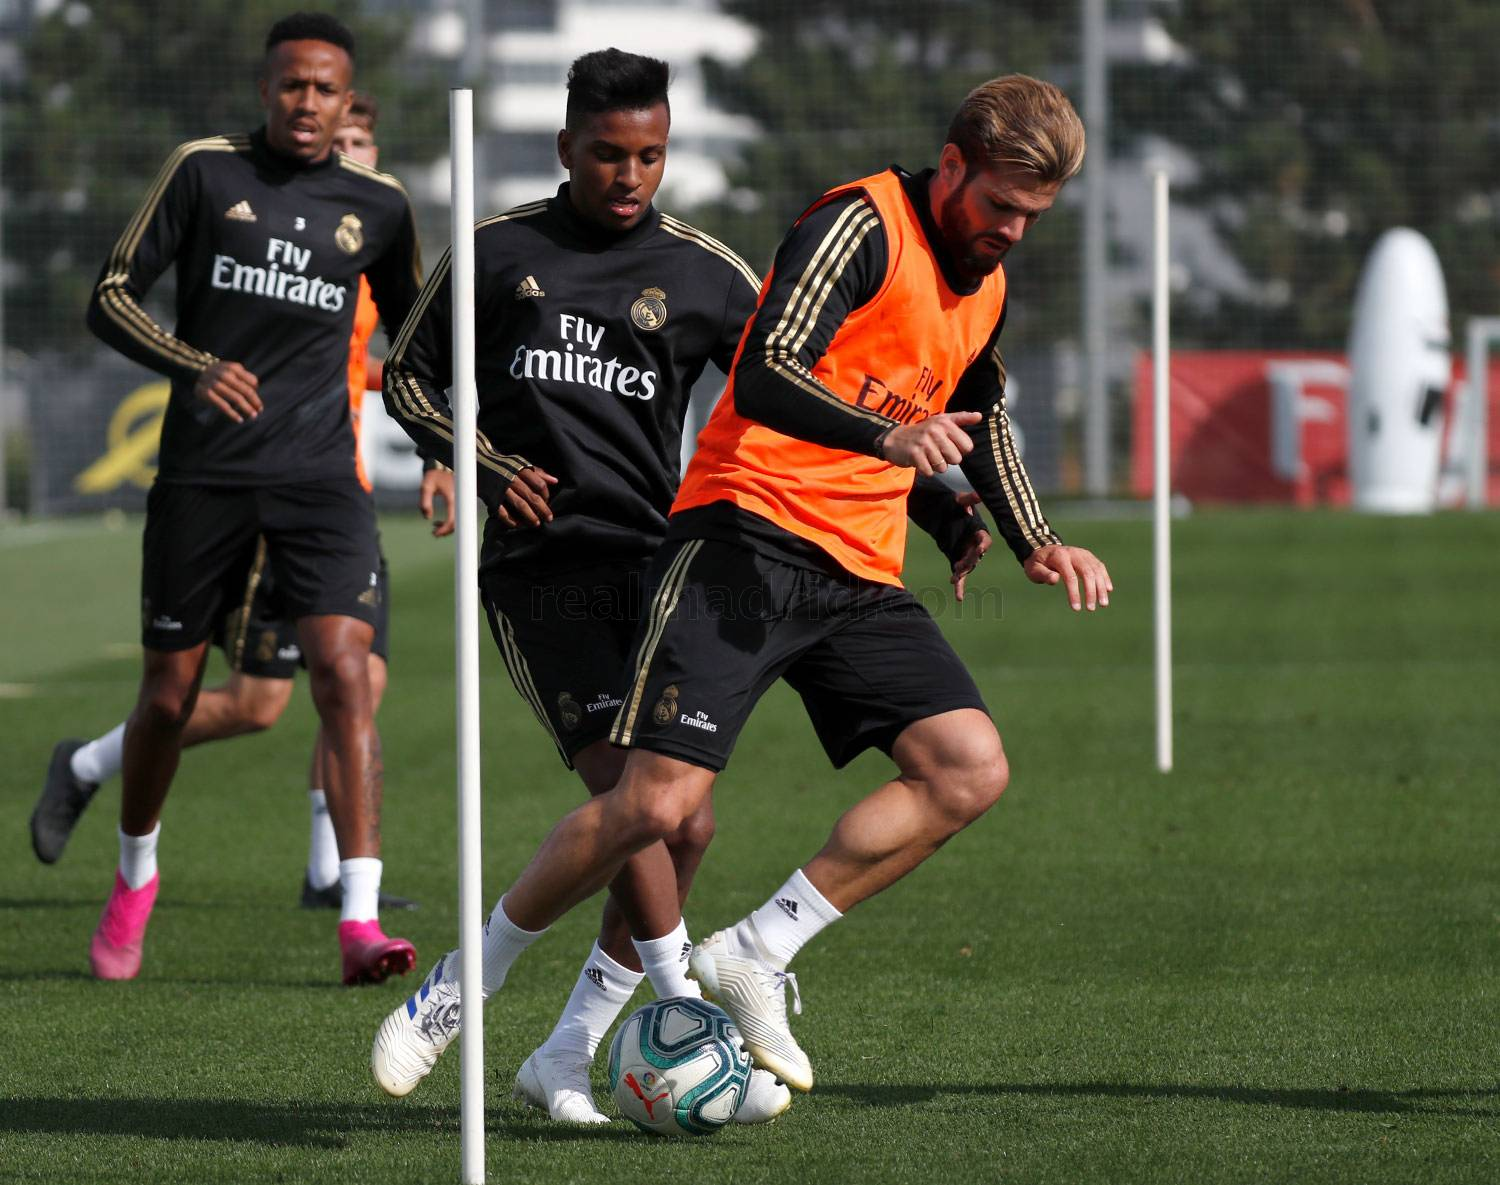 Real Madrid - Entrenamiento del Real Madrid  - 23-09-2019